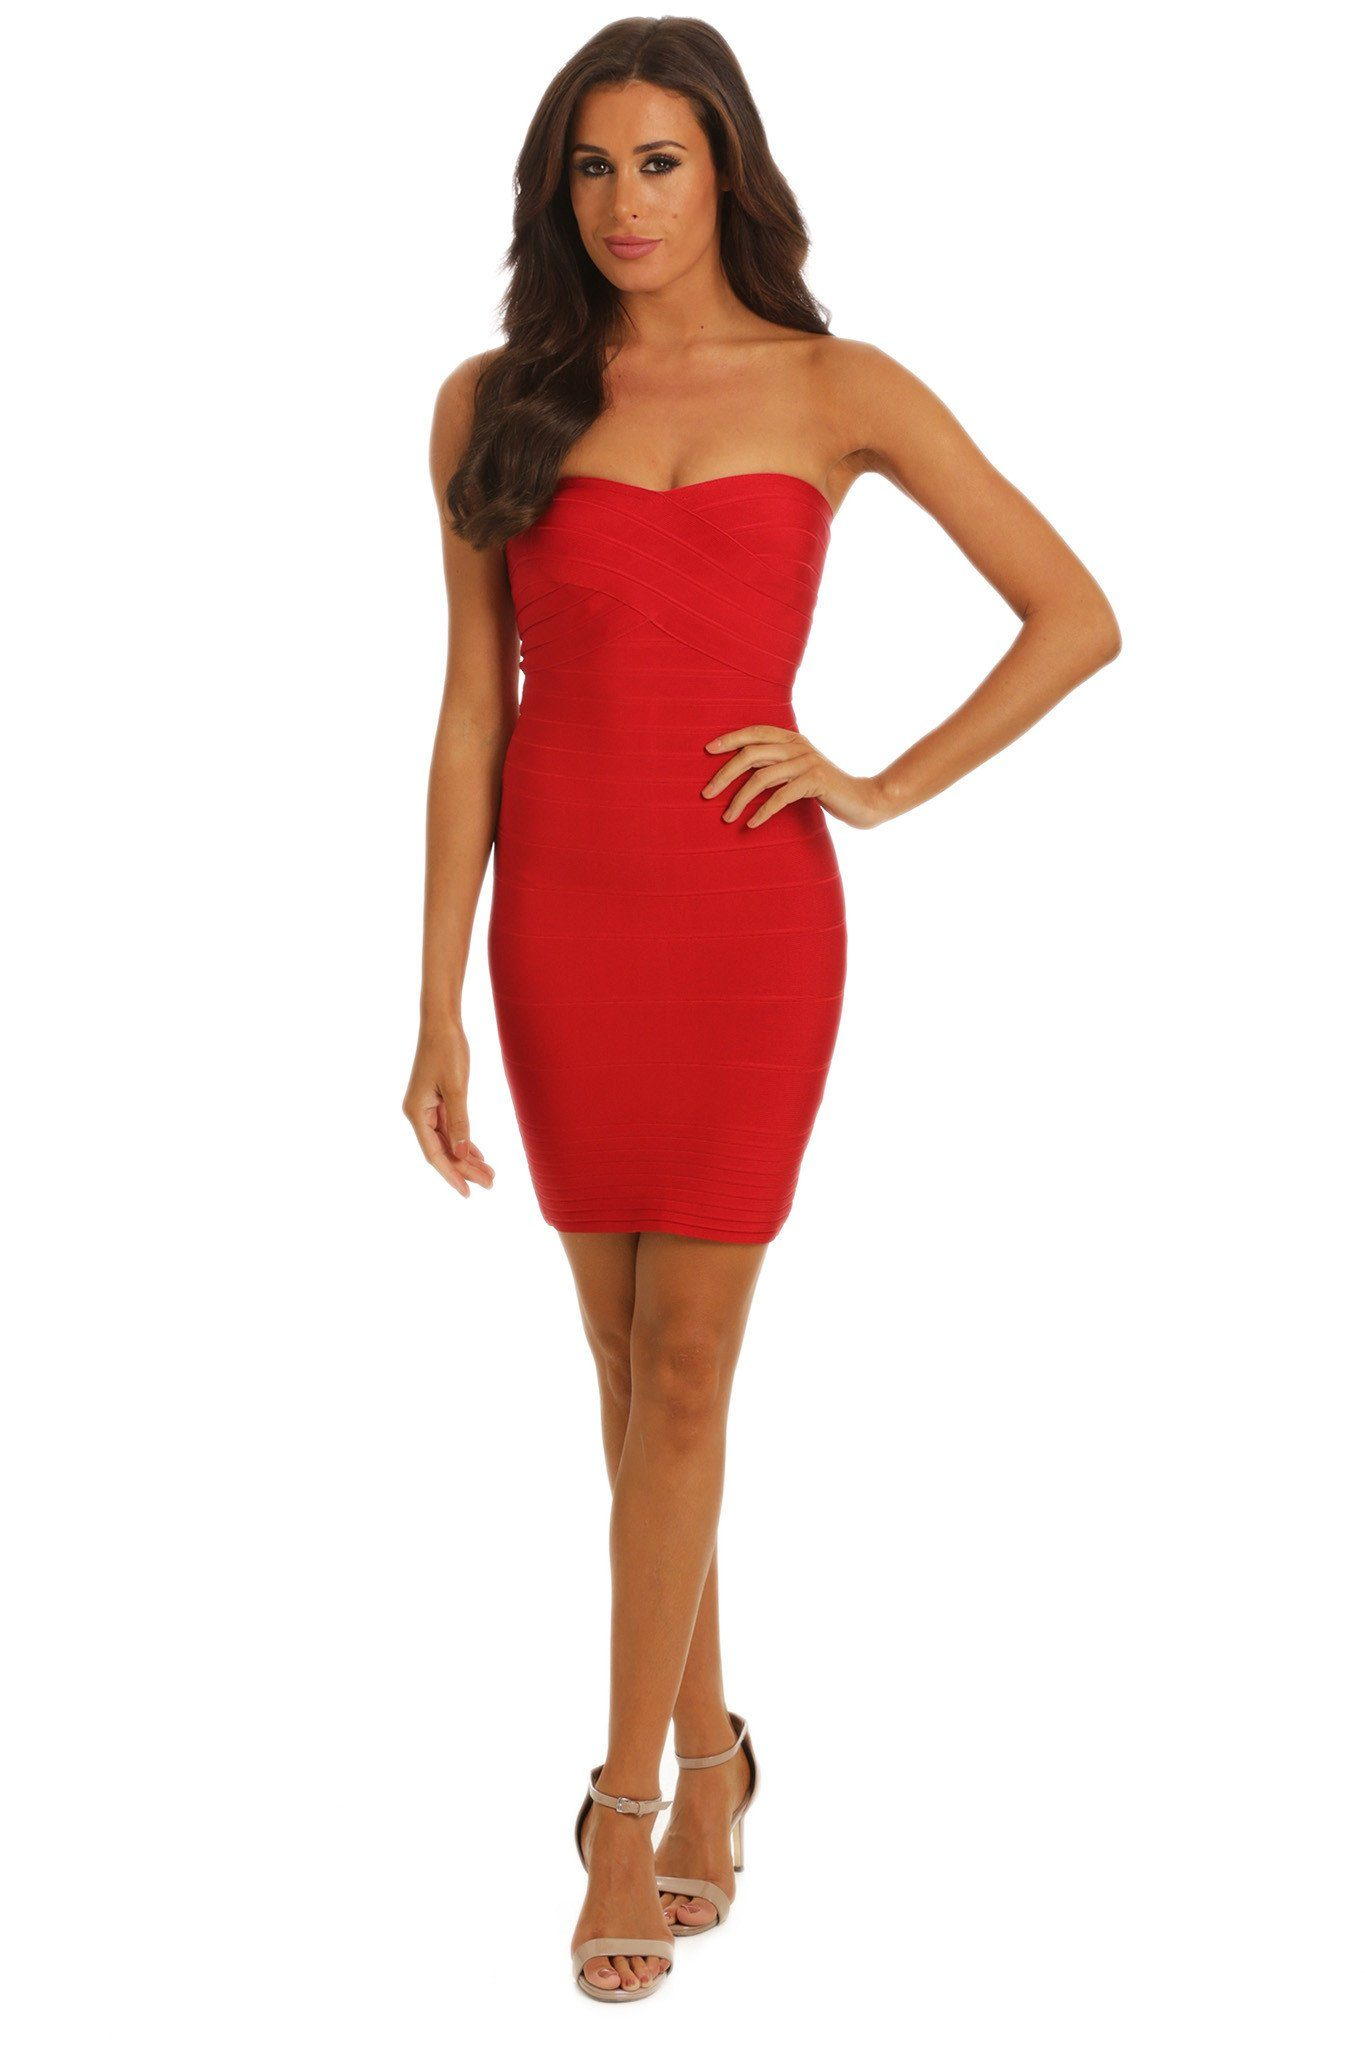 Red mini strapless bandage dress sweetheart neckline